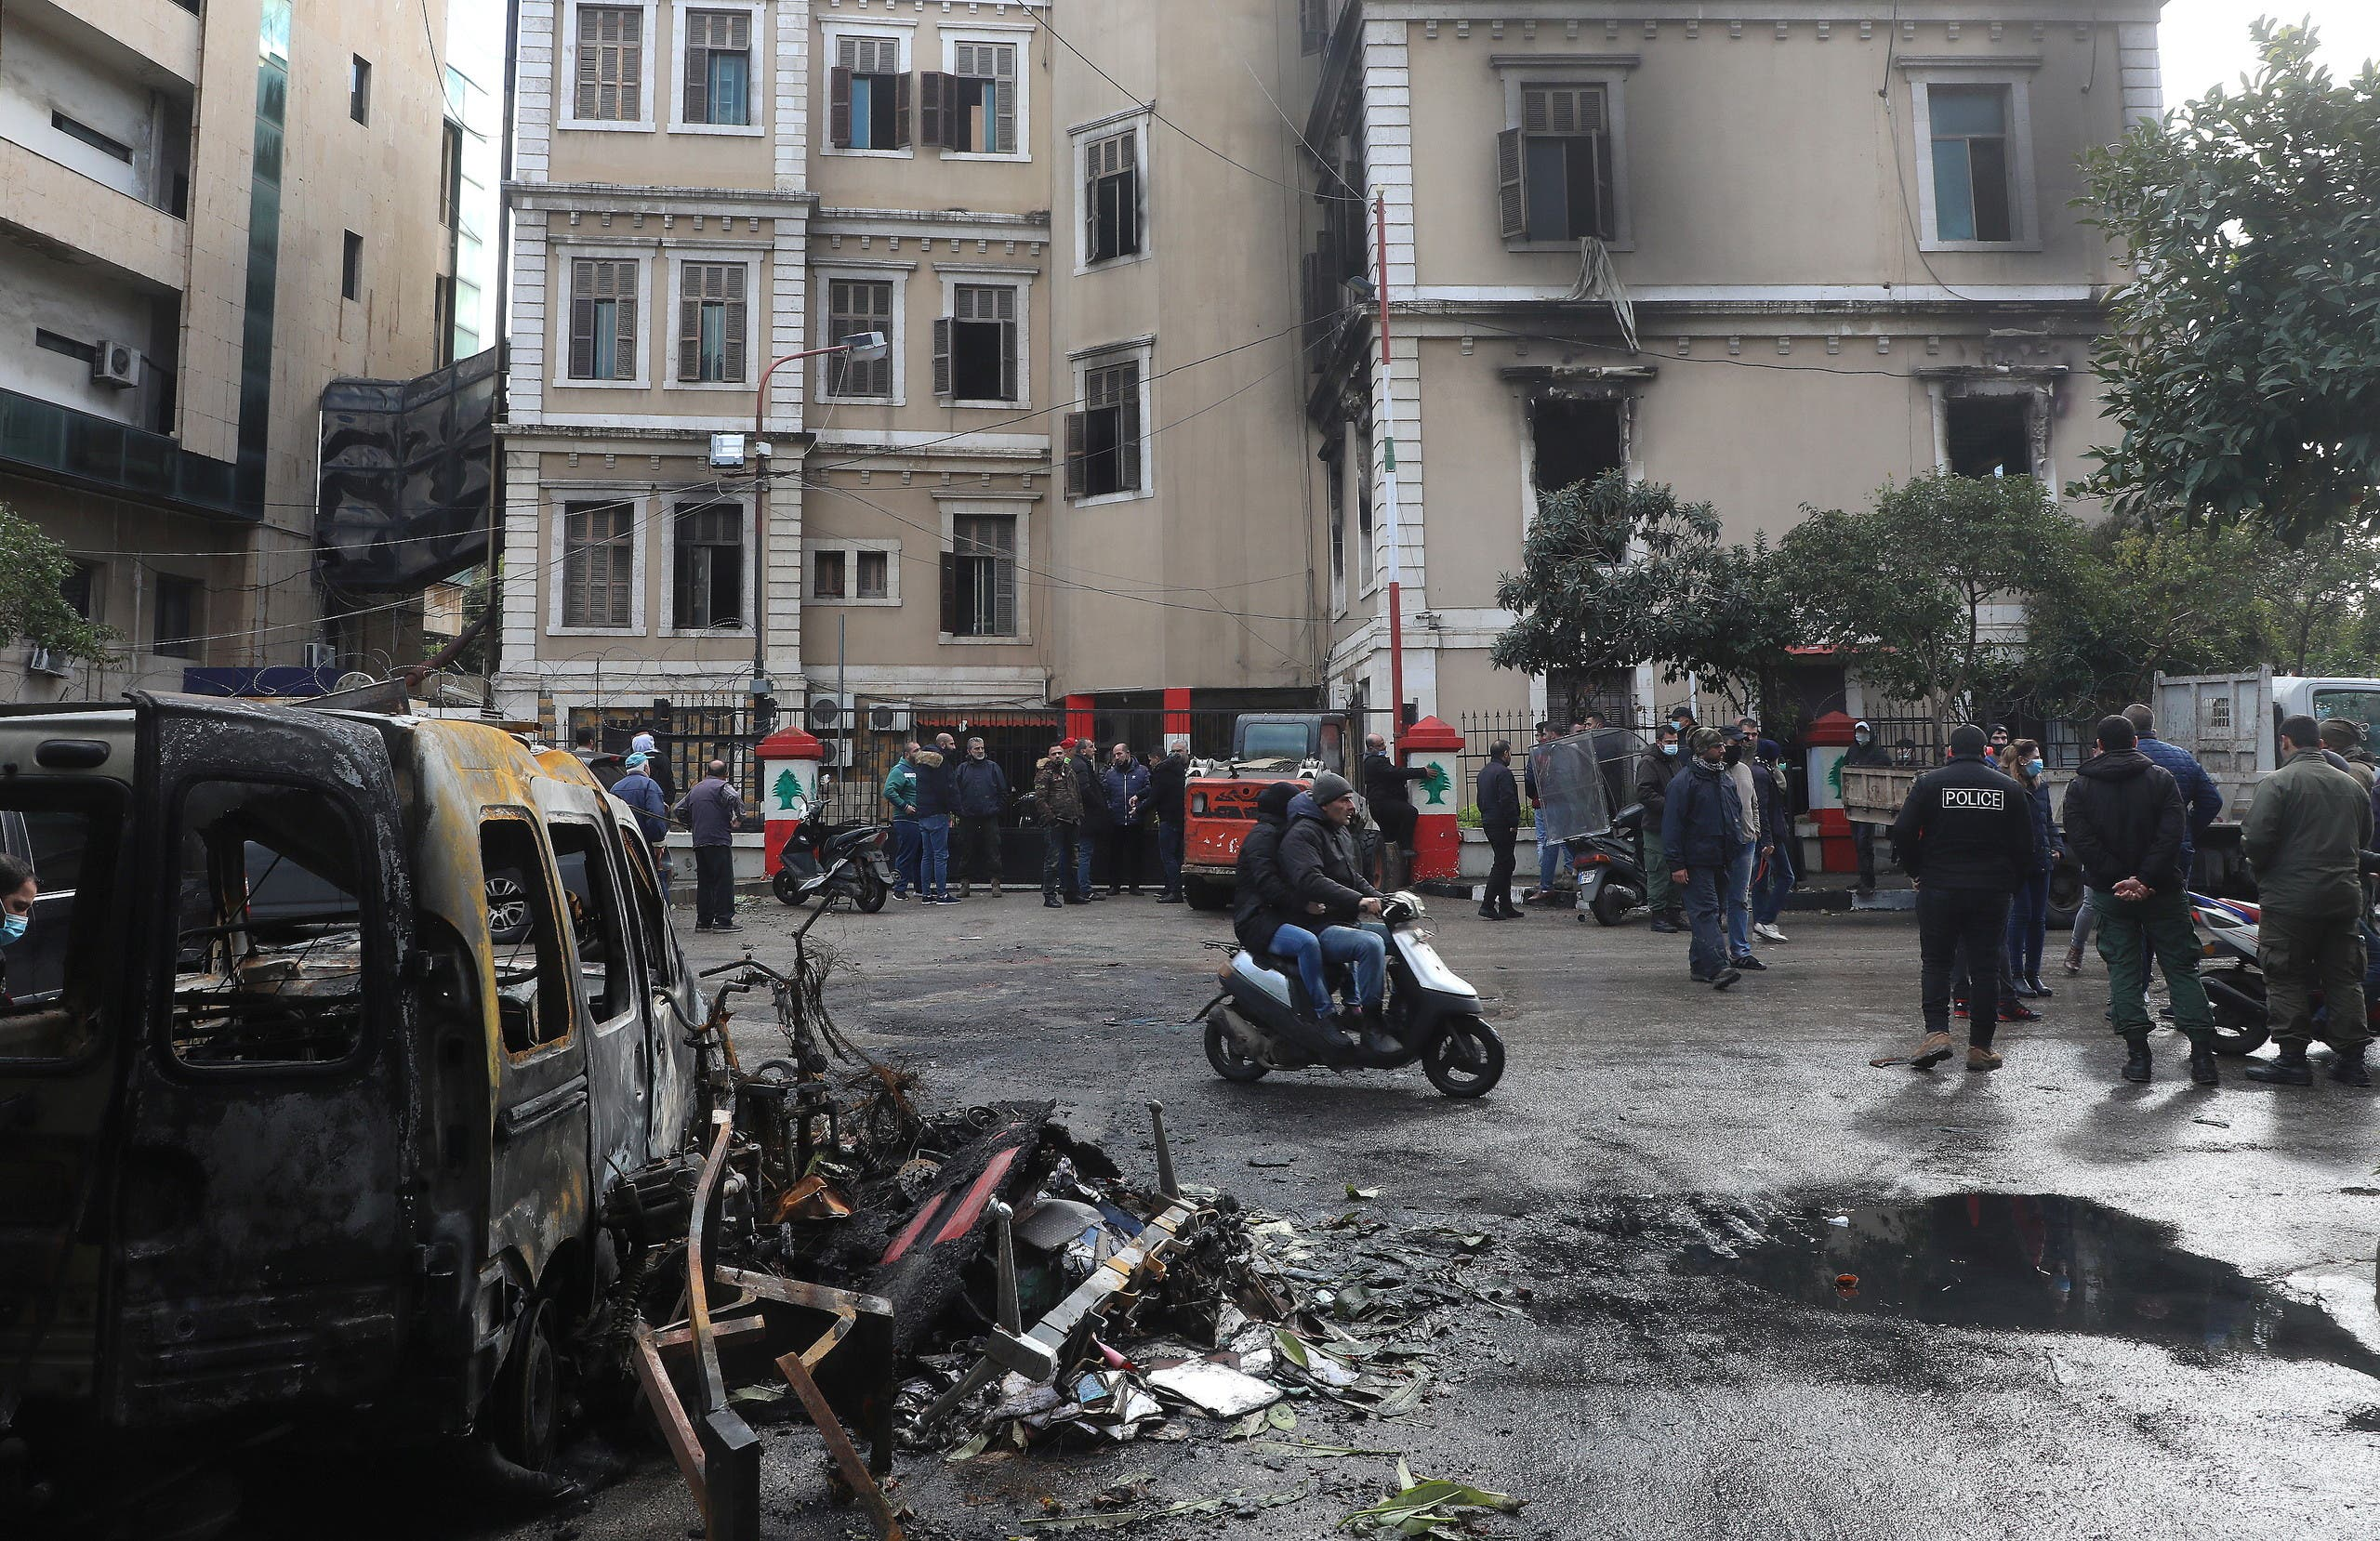 People gather at the municipality building that was set ablaze overnight, in the aftermath of protests against the lockdown and worsening economic conditions, amid the spread of the coronavirus disease (COVID-19), in Tripoli, Lebanon January 29, 2021. (File photo: Reuters)